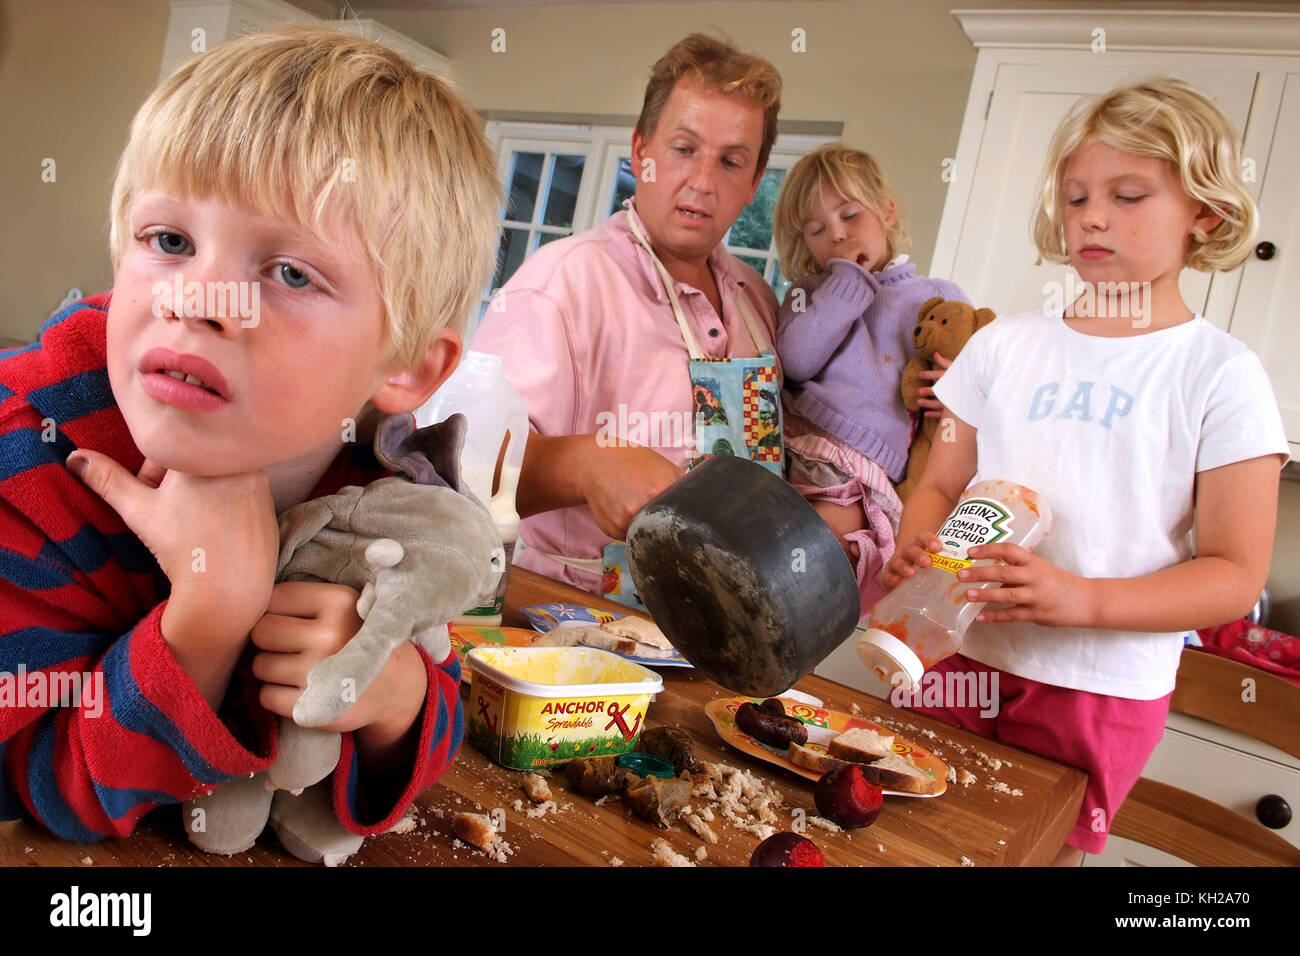 Tim West with George, Anna and Sophie (purple top) - Stock Image